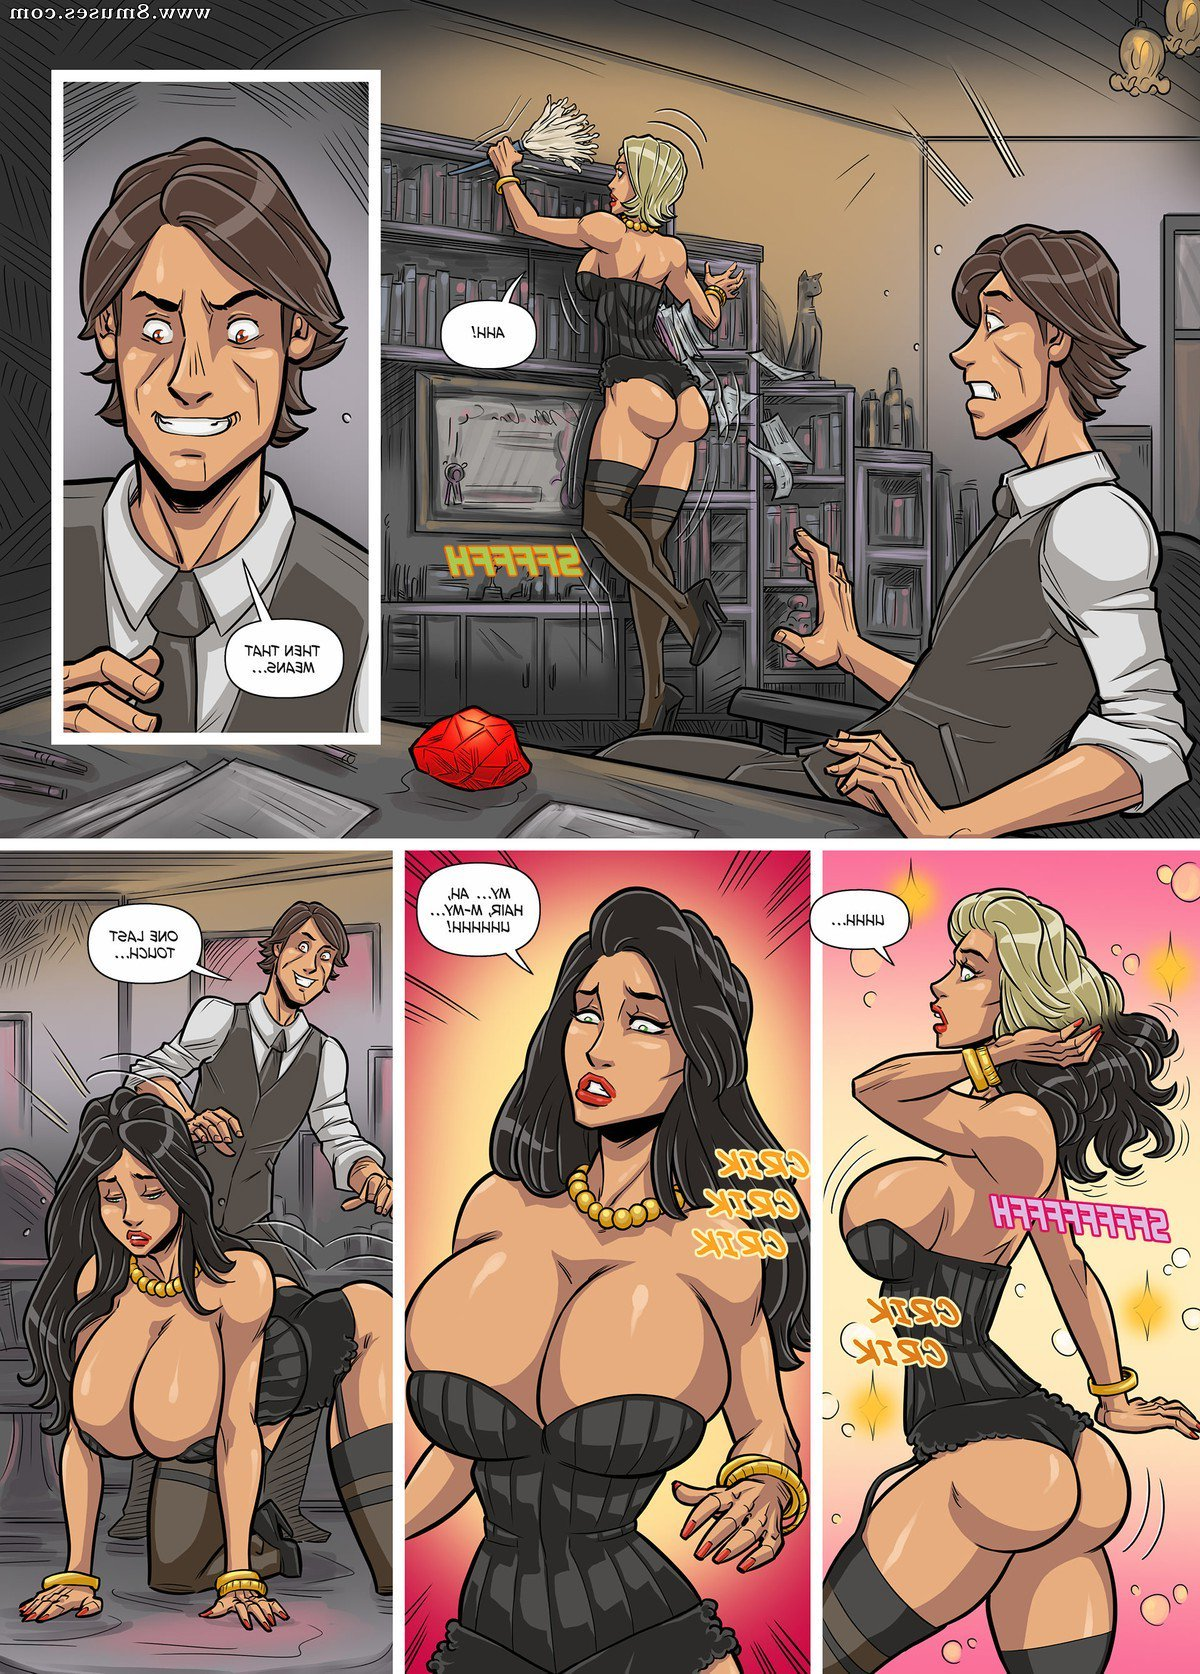 Expansionfan-Comics/The-Growing-Mistress/Issue-1 The_Growing_Mistress_-_Issue_1_7.jpg